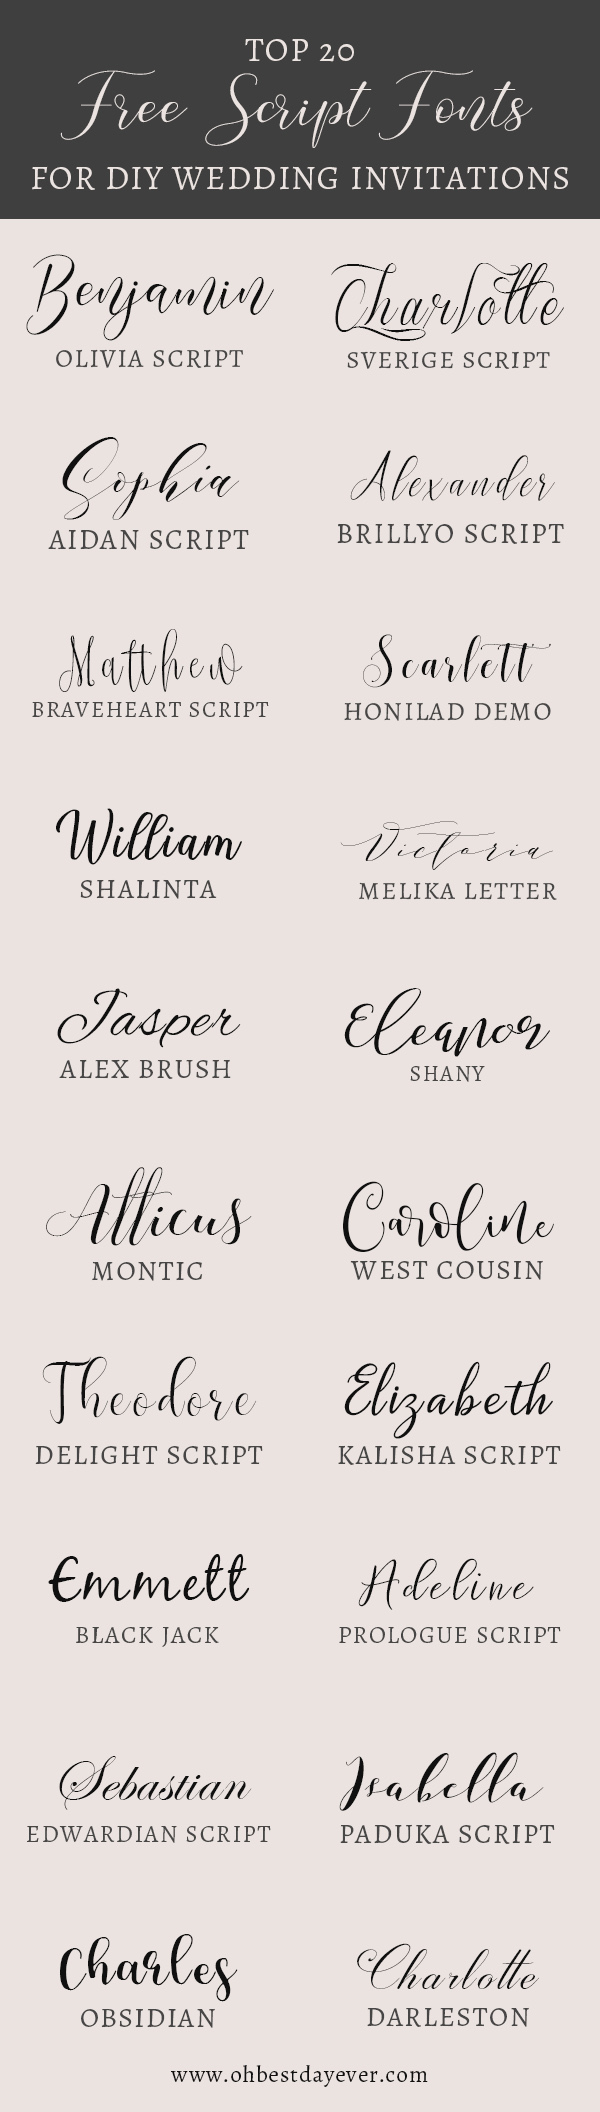 Wedding Invitation Fonts Archives Oh Best Day Ever